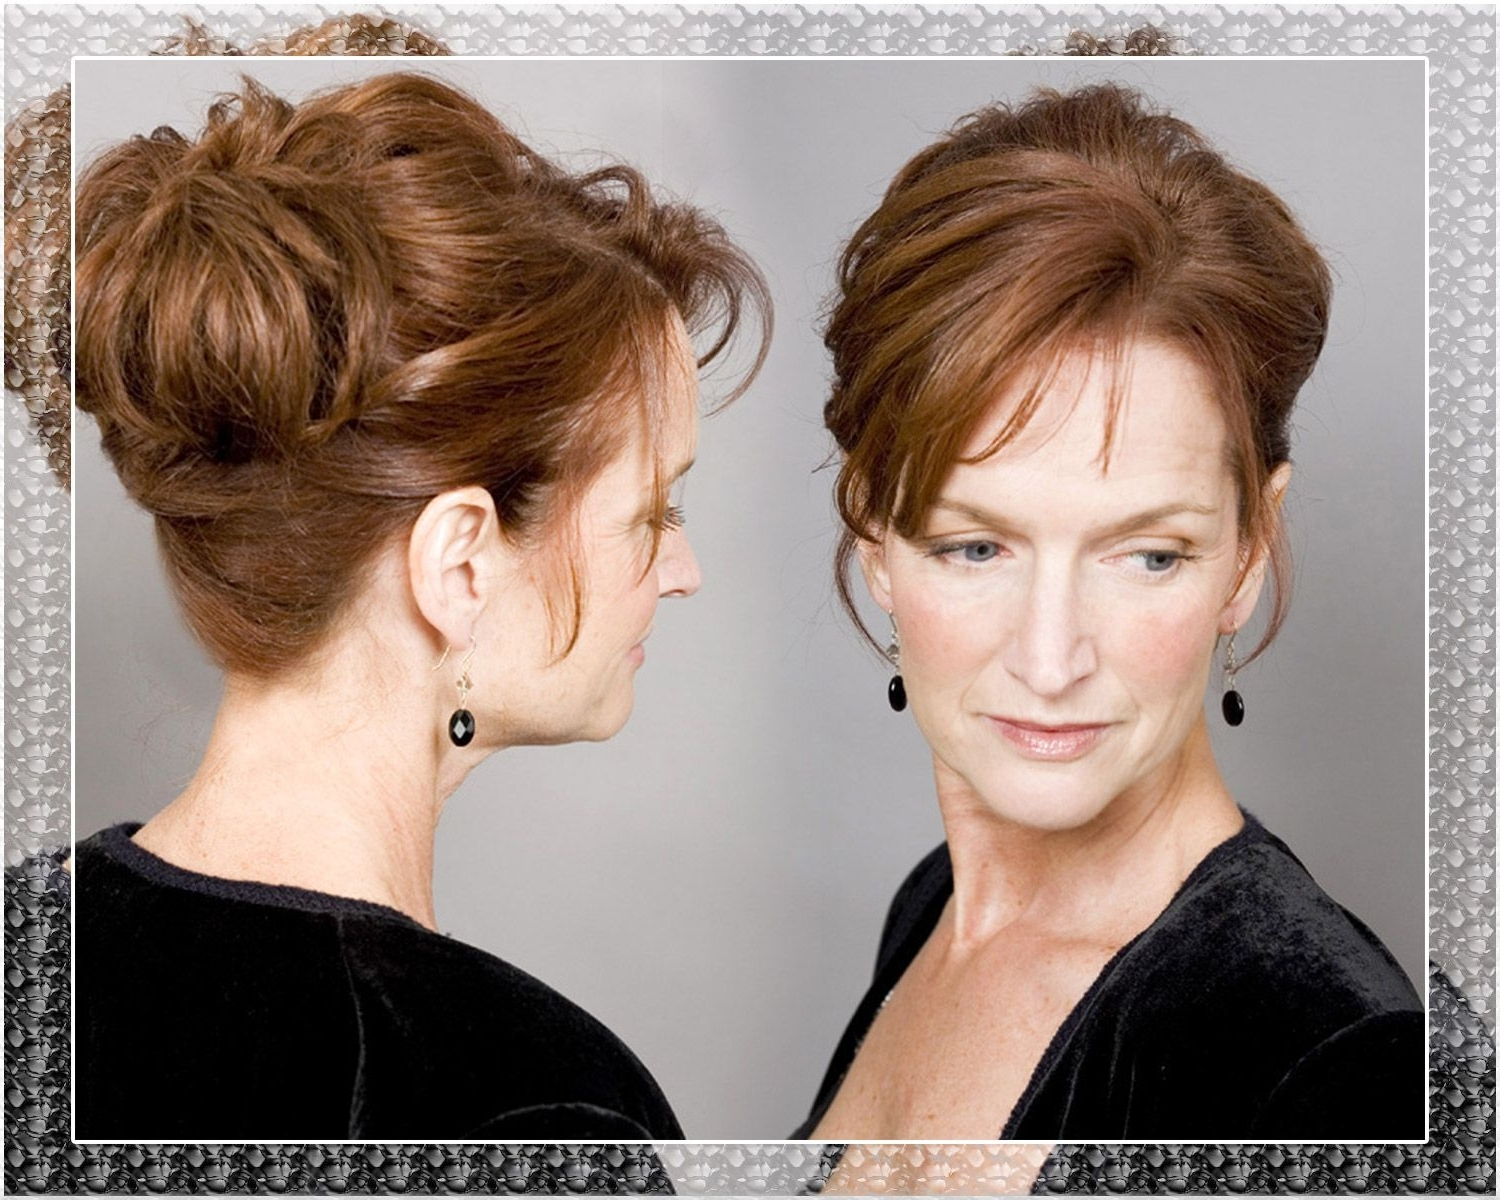 Hairstyles For Weddings (View 8 of 15)